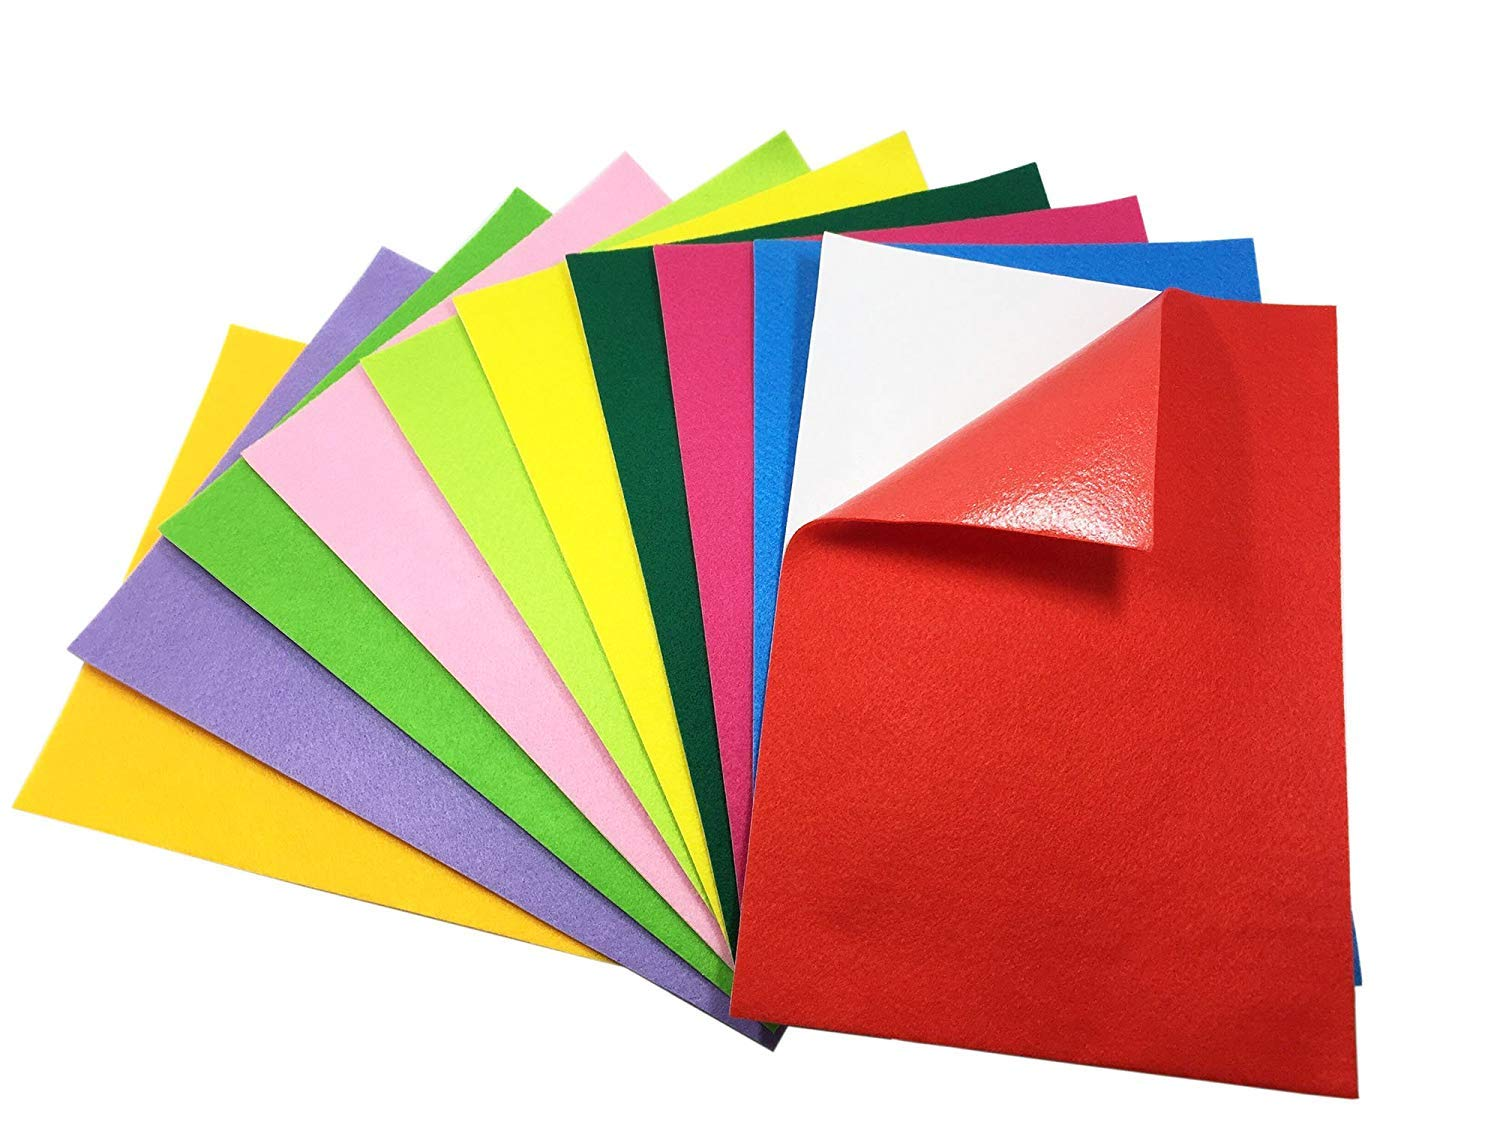 10 Colorful Sheets of Stickyfelt - Peel and Stick, Adhesive-Backed Felt Sheets,Adhesive Back Felt Sheets Fabric Sticky Back Sheets, Self-Adhesive Felt for Art and Craft Making